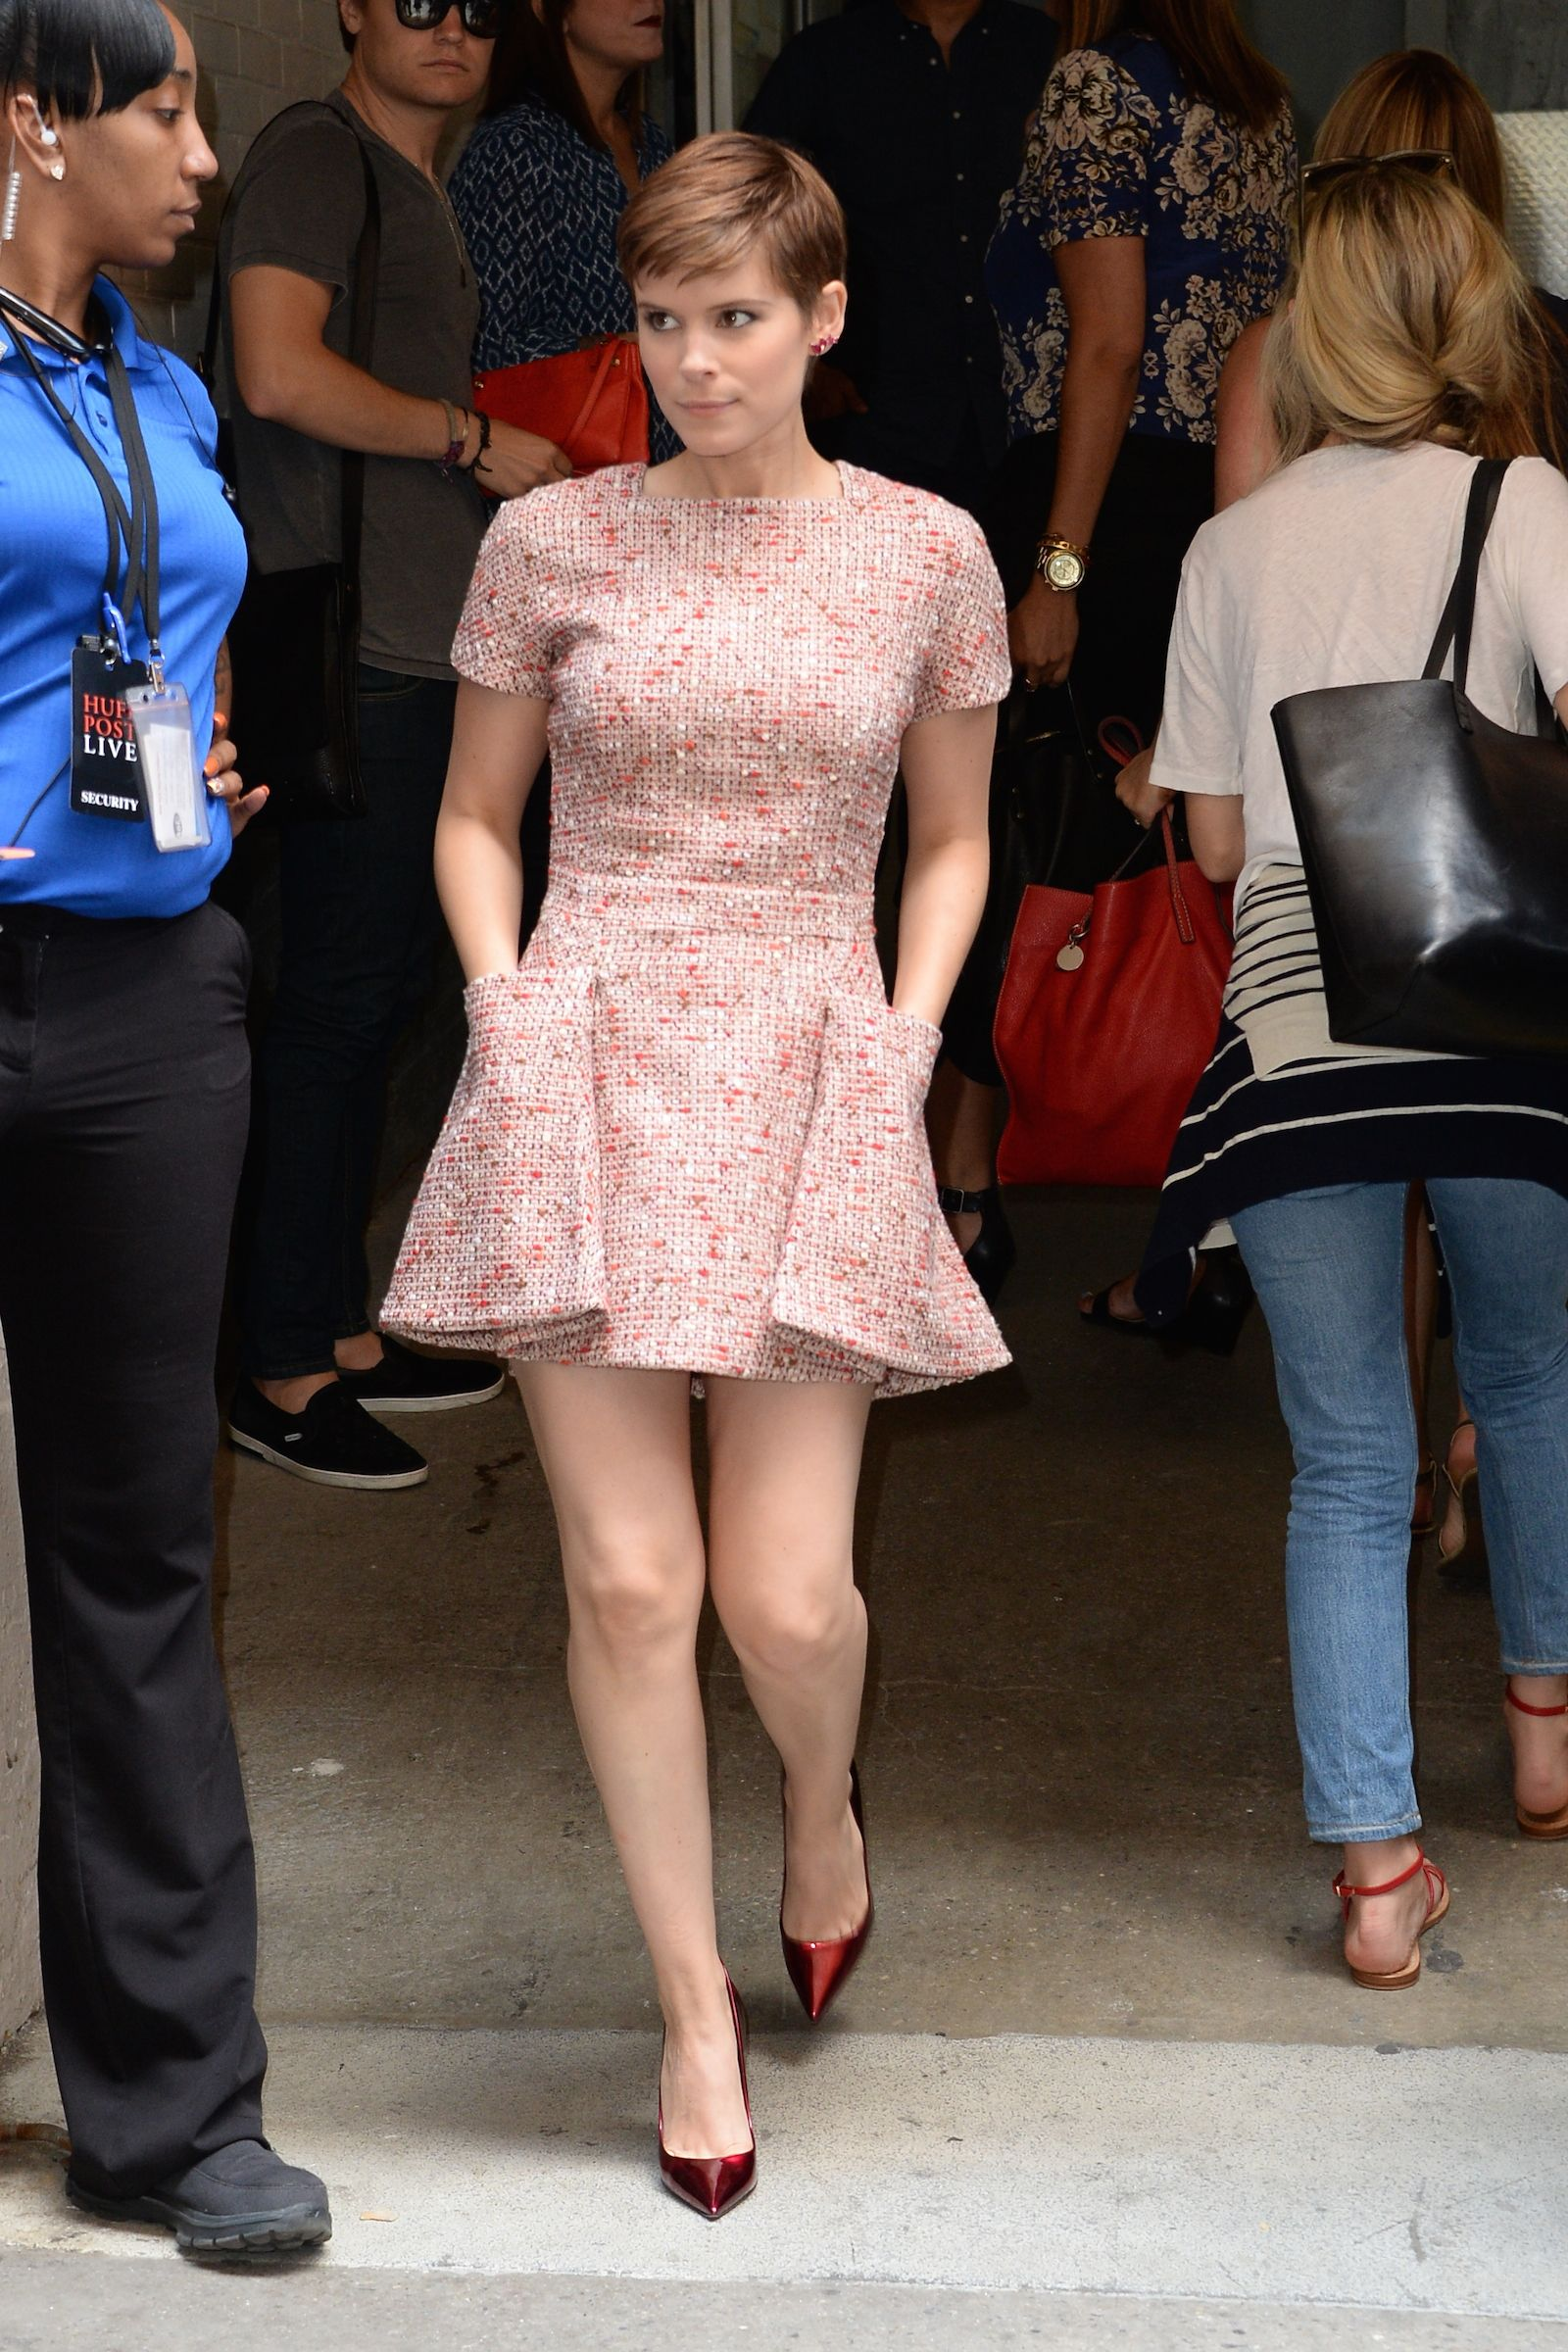 """<p>Who: Kate Mara</p><p class=""""MsoNormal"""">When: August 4, 2015<o:p></o:p></p><p class=""""MsoNormal"""">Why: Kate Mara continues her Jean Seberg-inspired streak with her pixie hair and slew of New Wave dresses, but this is our favorite outfit so far. The structural Christian Dior dress in a girly, pink tweed is sweet—but her toned legs, metallic pumps and lack of jewelry add a touch of maturity.   </p>"""